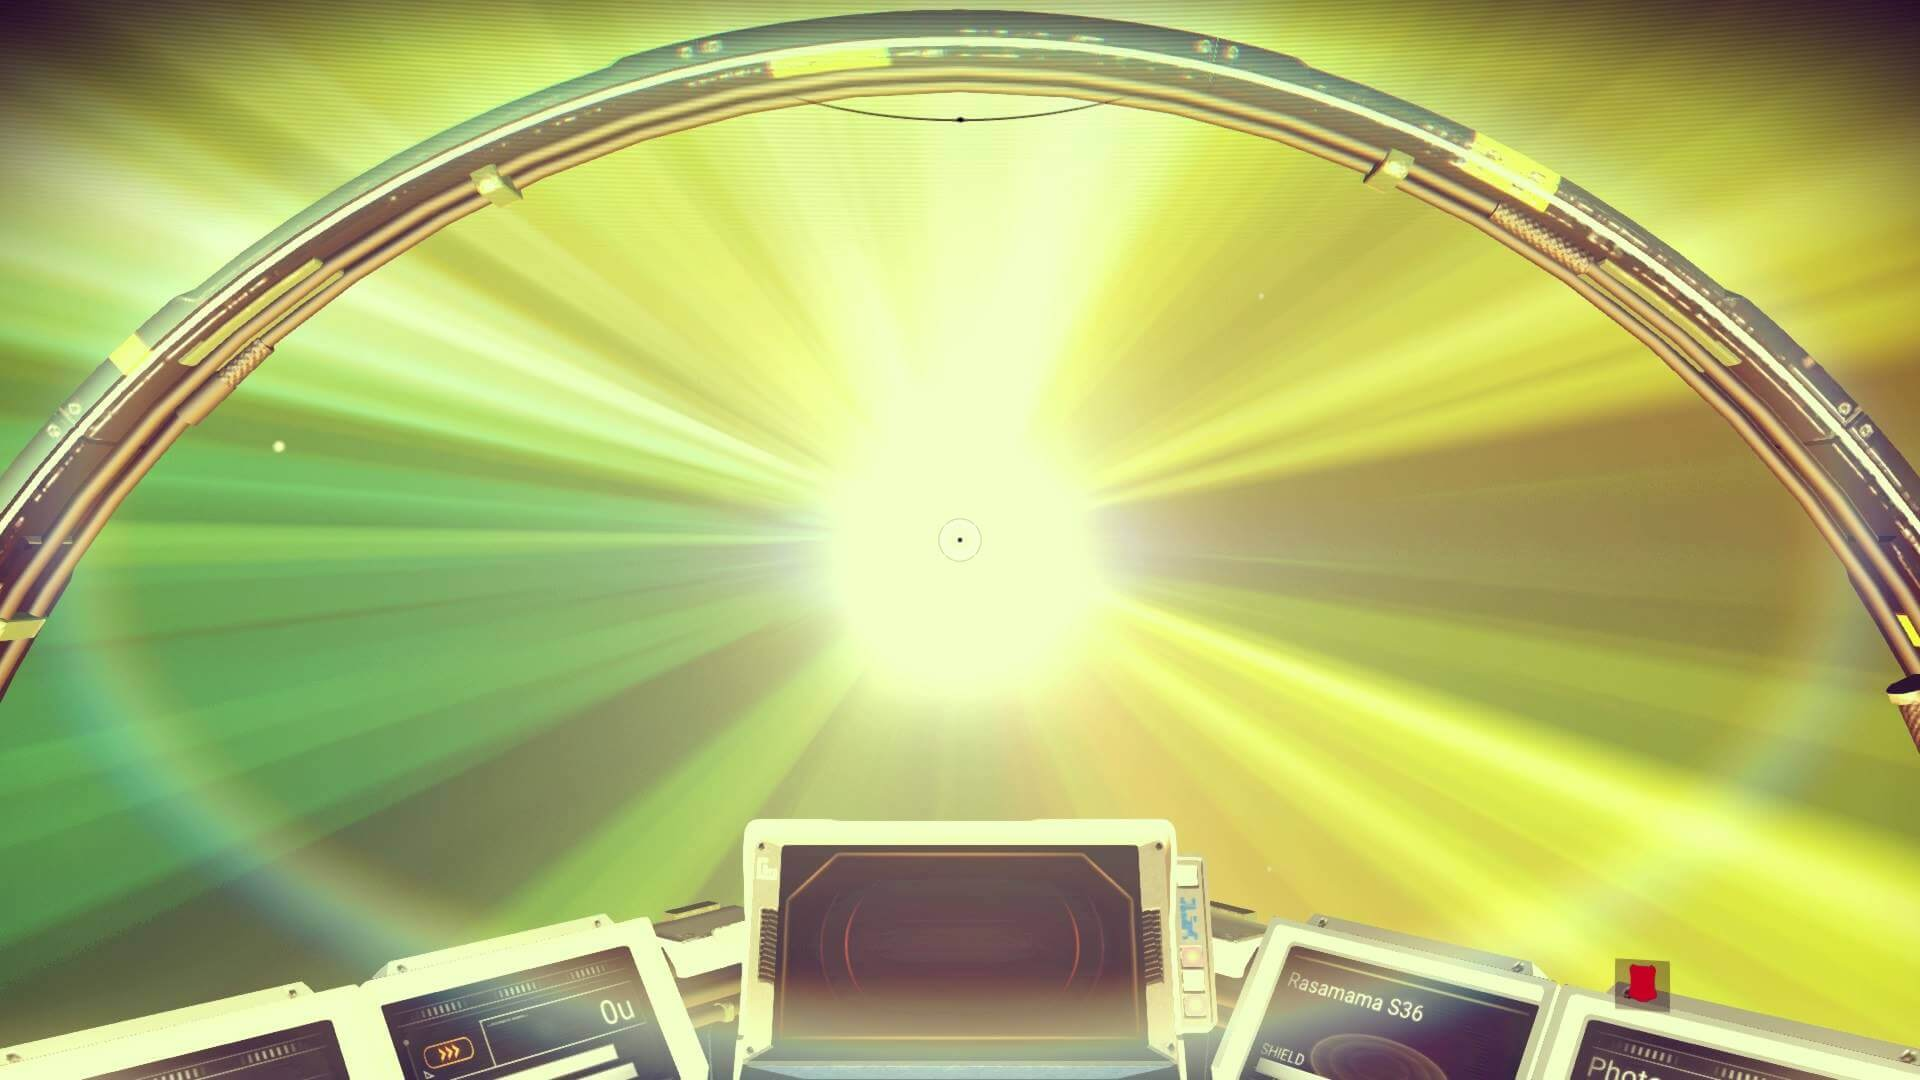 preview, kotaku, hello games, no mans sky